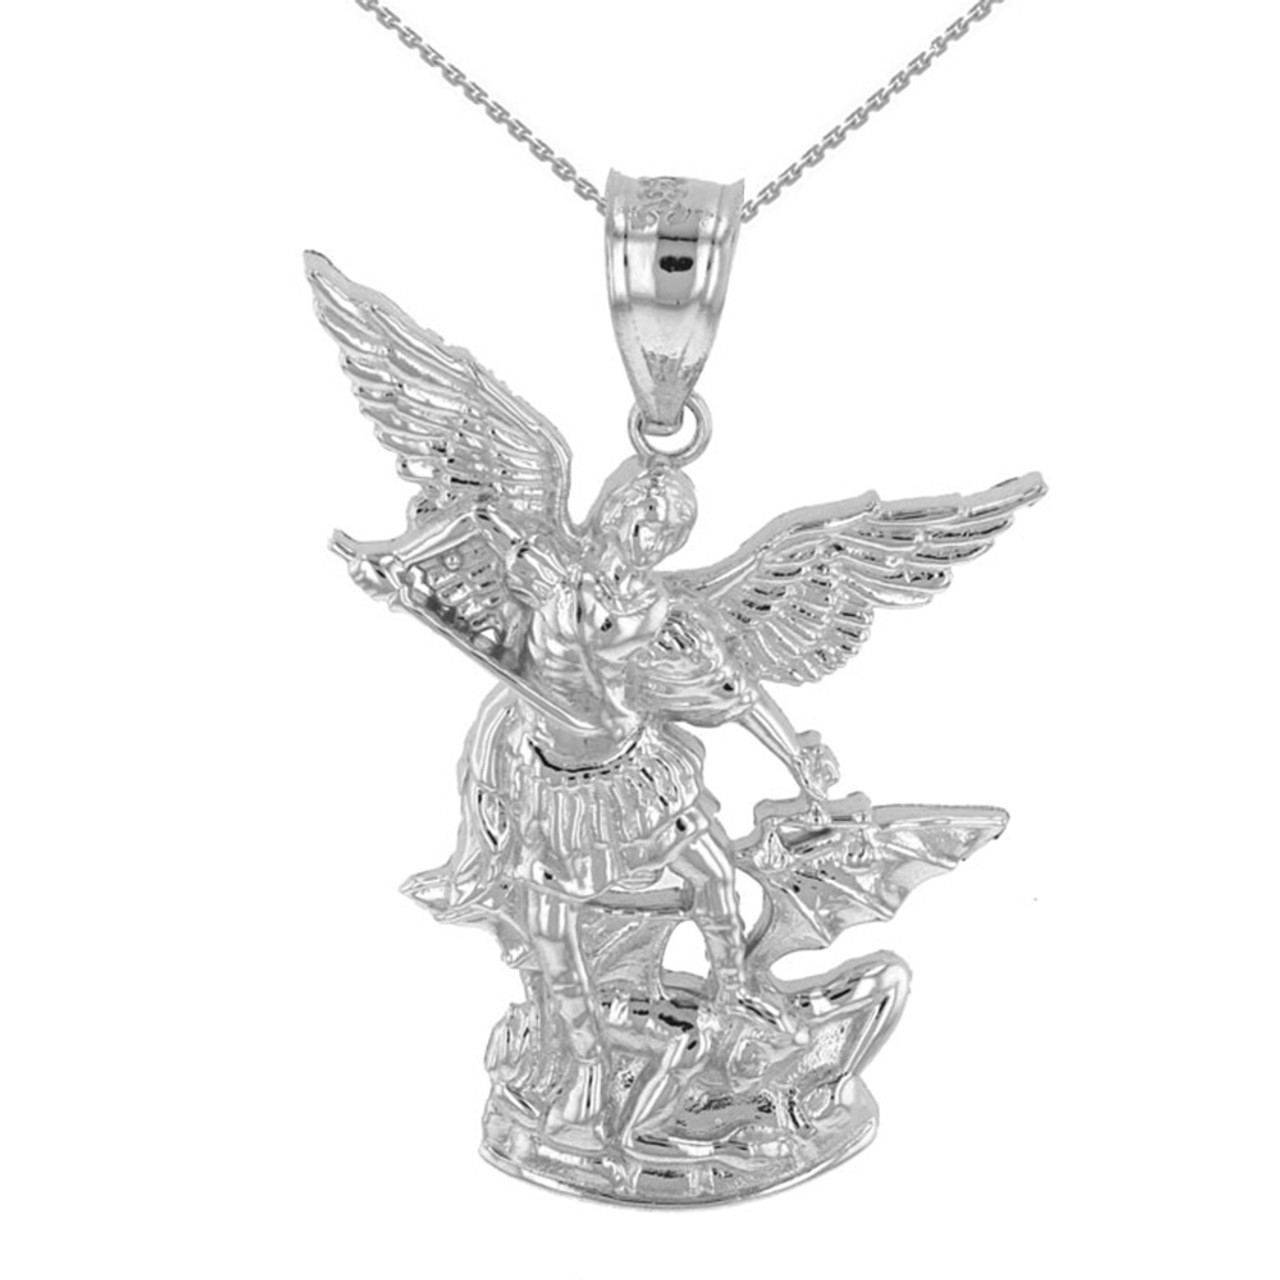 White gold st michael the archangel pendant necklace 135 aloadofball Gallery